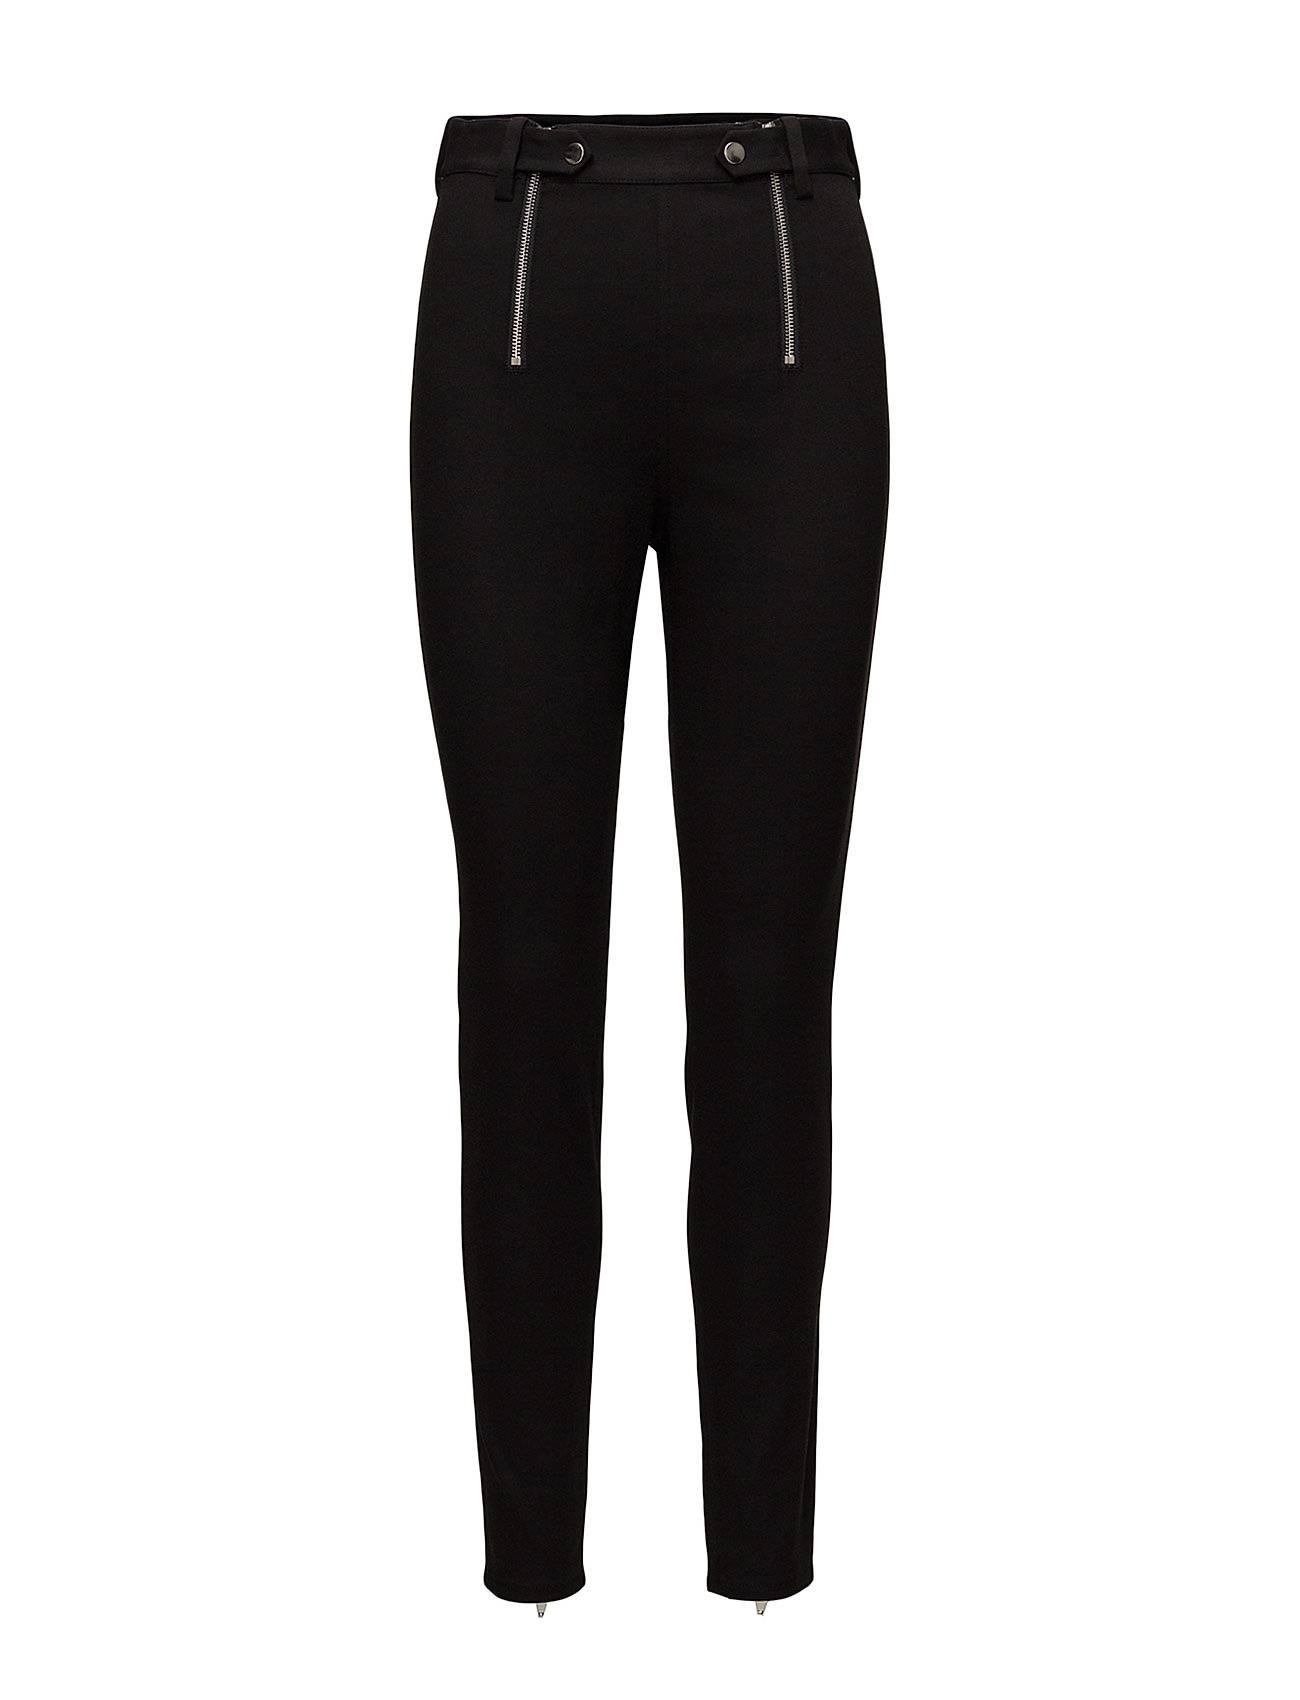 T by Alexander Wang Panelled Bodycon Pants